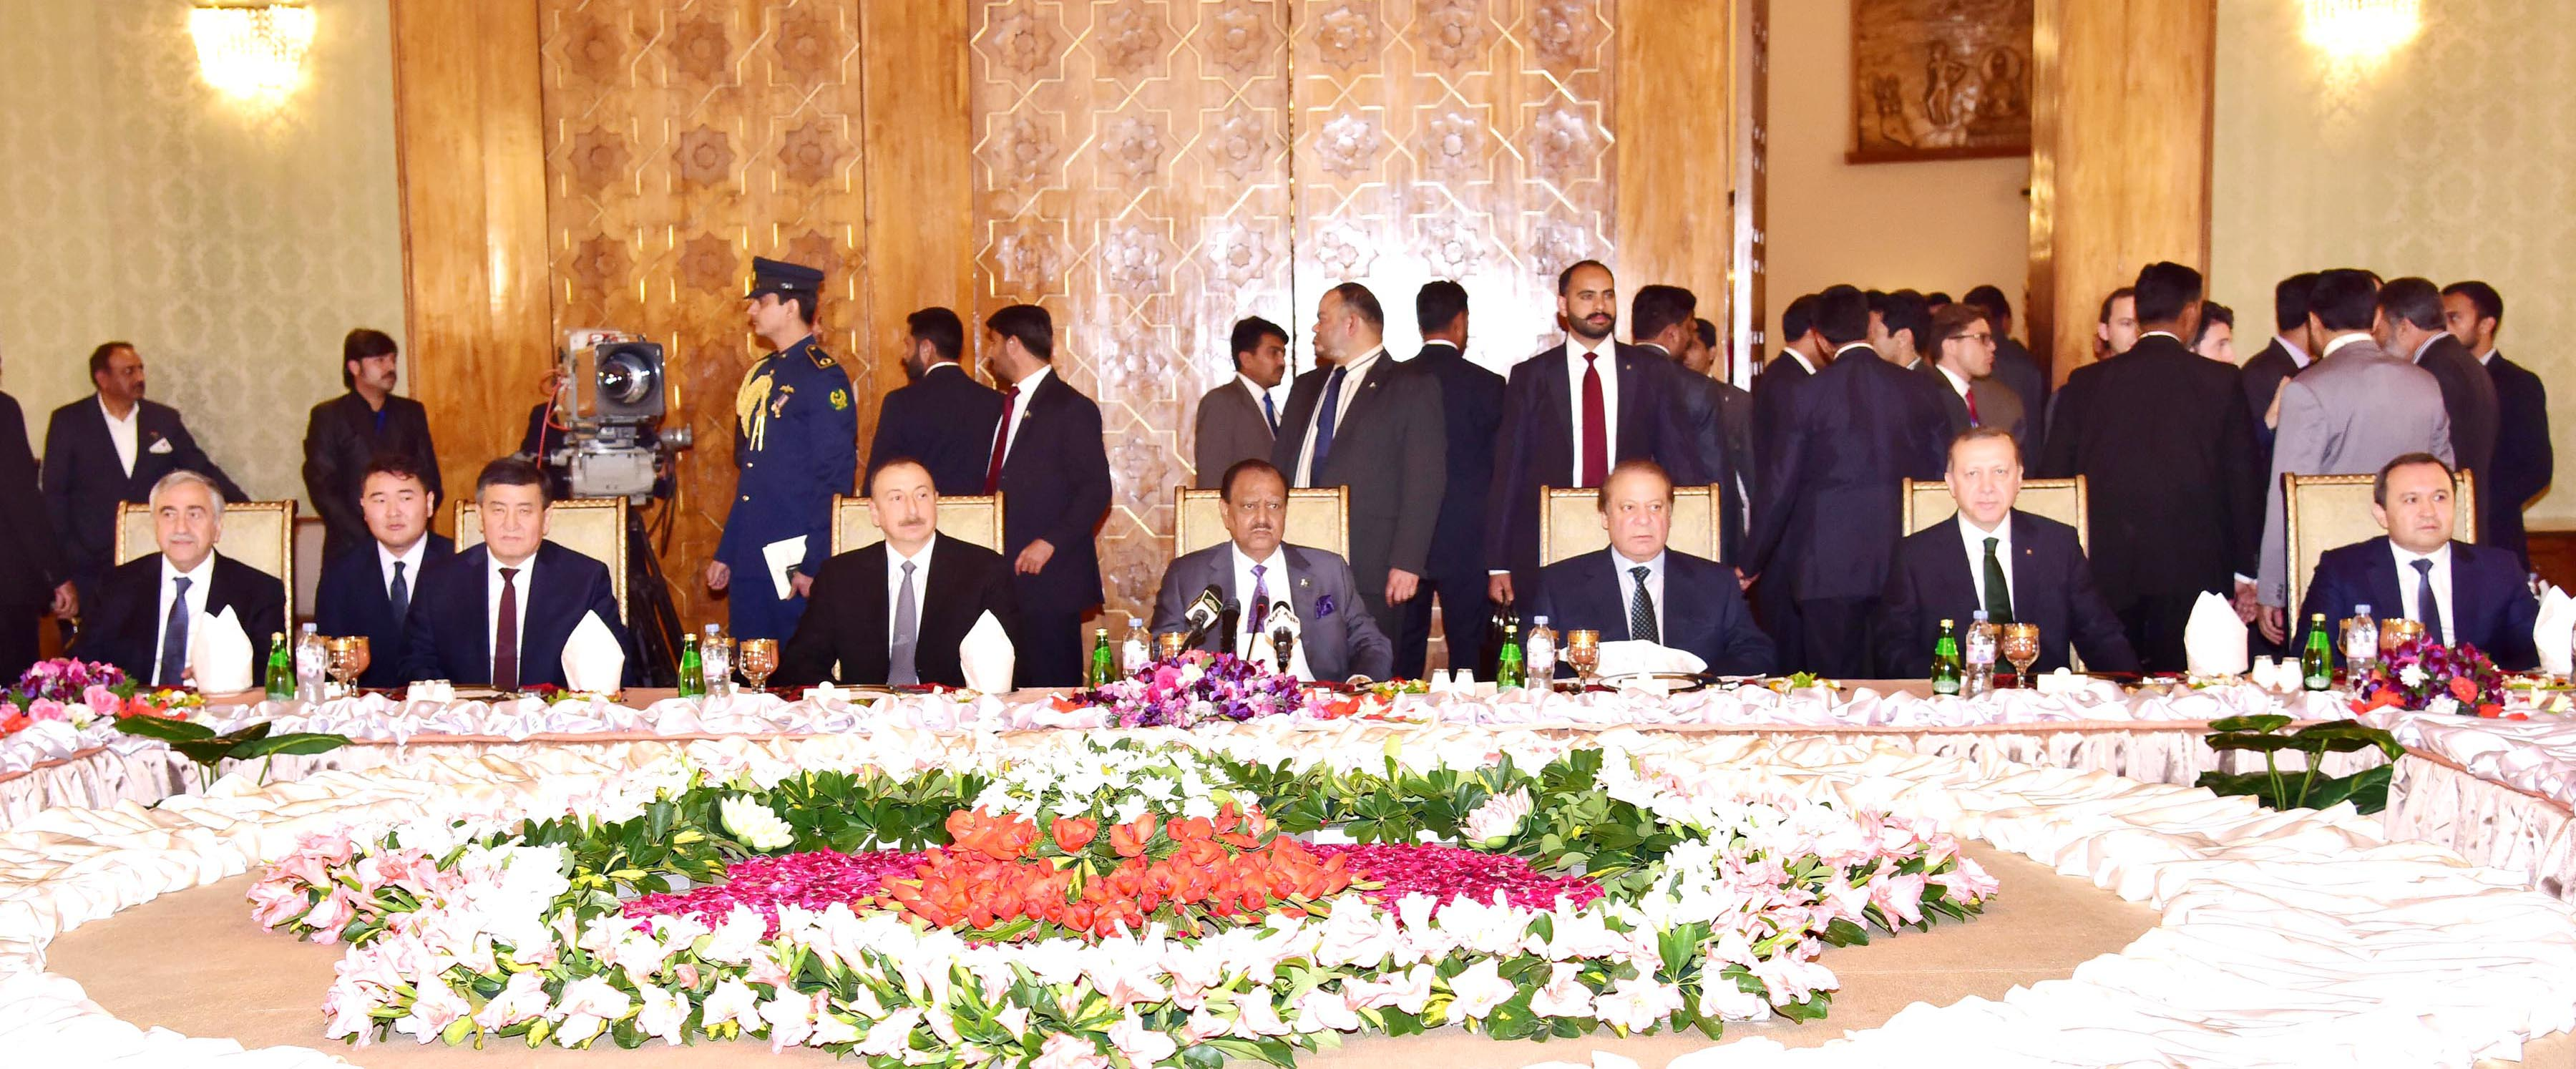 President Mamnoon Hussain and Prime Minister Muhammad Nawaz Sharif during State Banquet hosted in honor of Heads of States / Governments of ECO member countries at the Aiwan-e-Sadr, Islamabad on February 28, 2017.